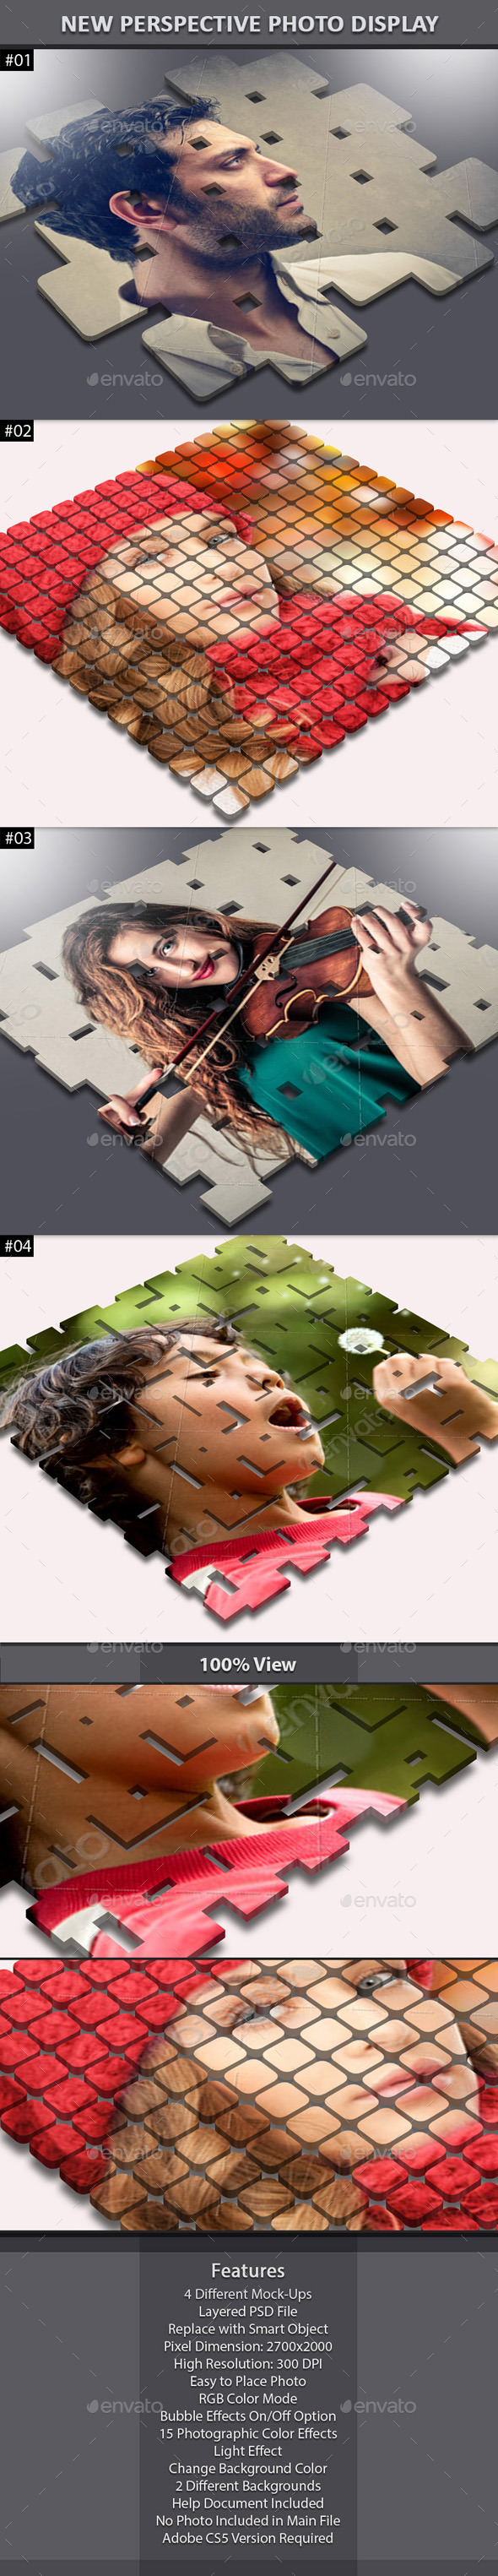 GraphicRiver New Perspective Photo Display 6077687